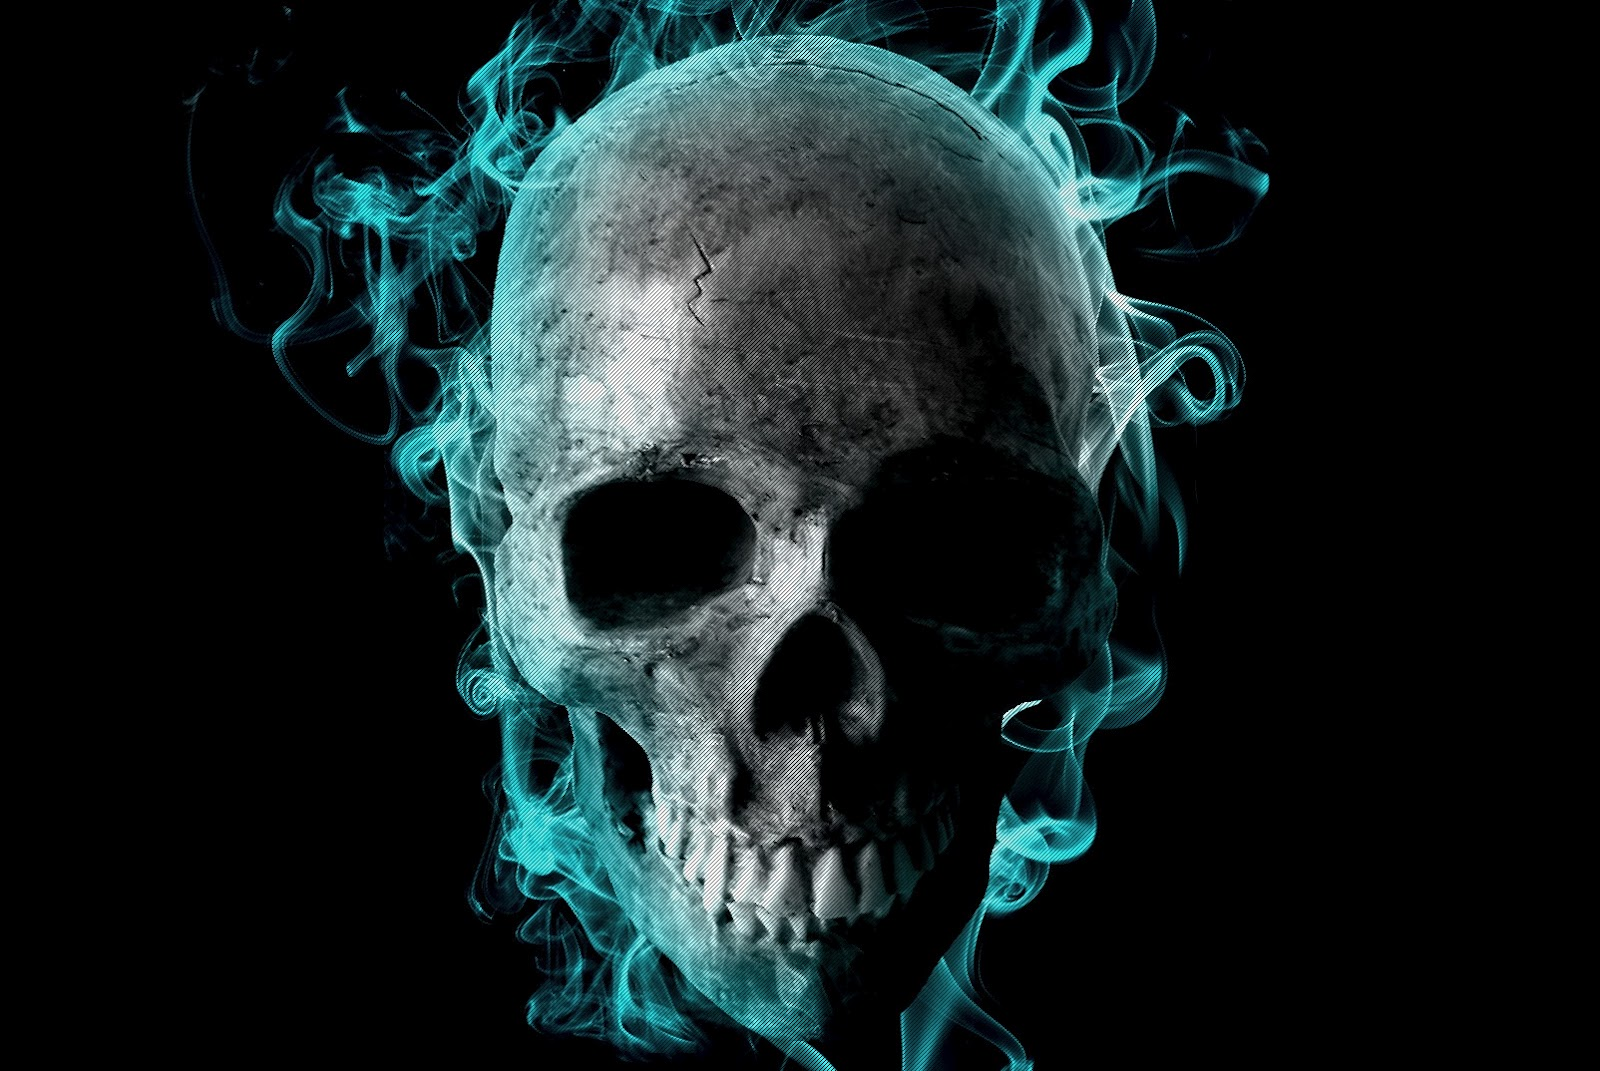 Skull Wallpaper - Wallpapers